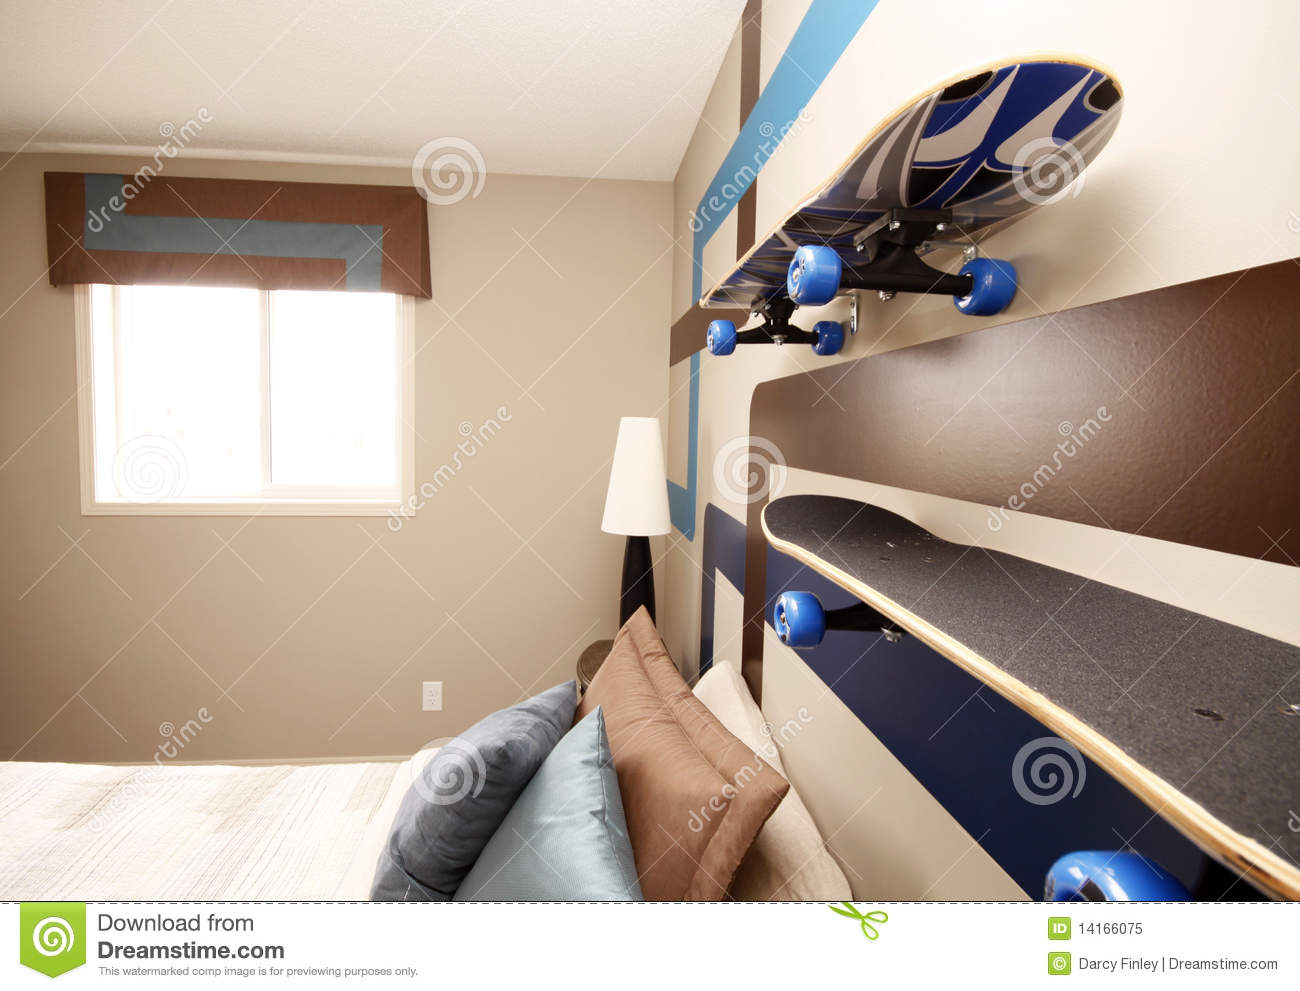 Cool Boys Bedroom Royalty Free Stock Photo - Image: 14166075